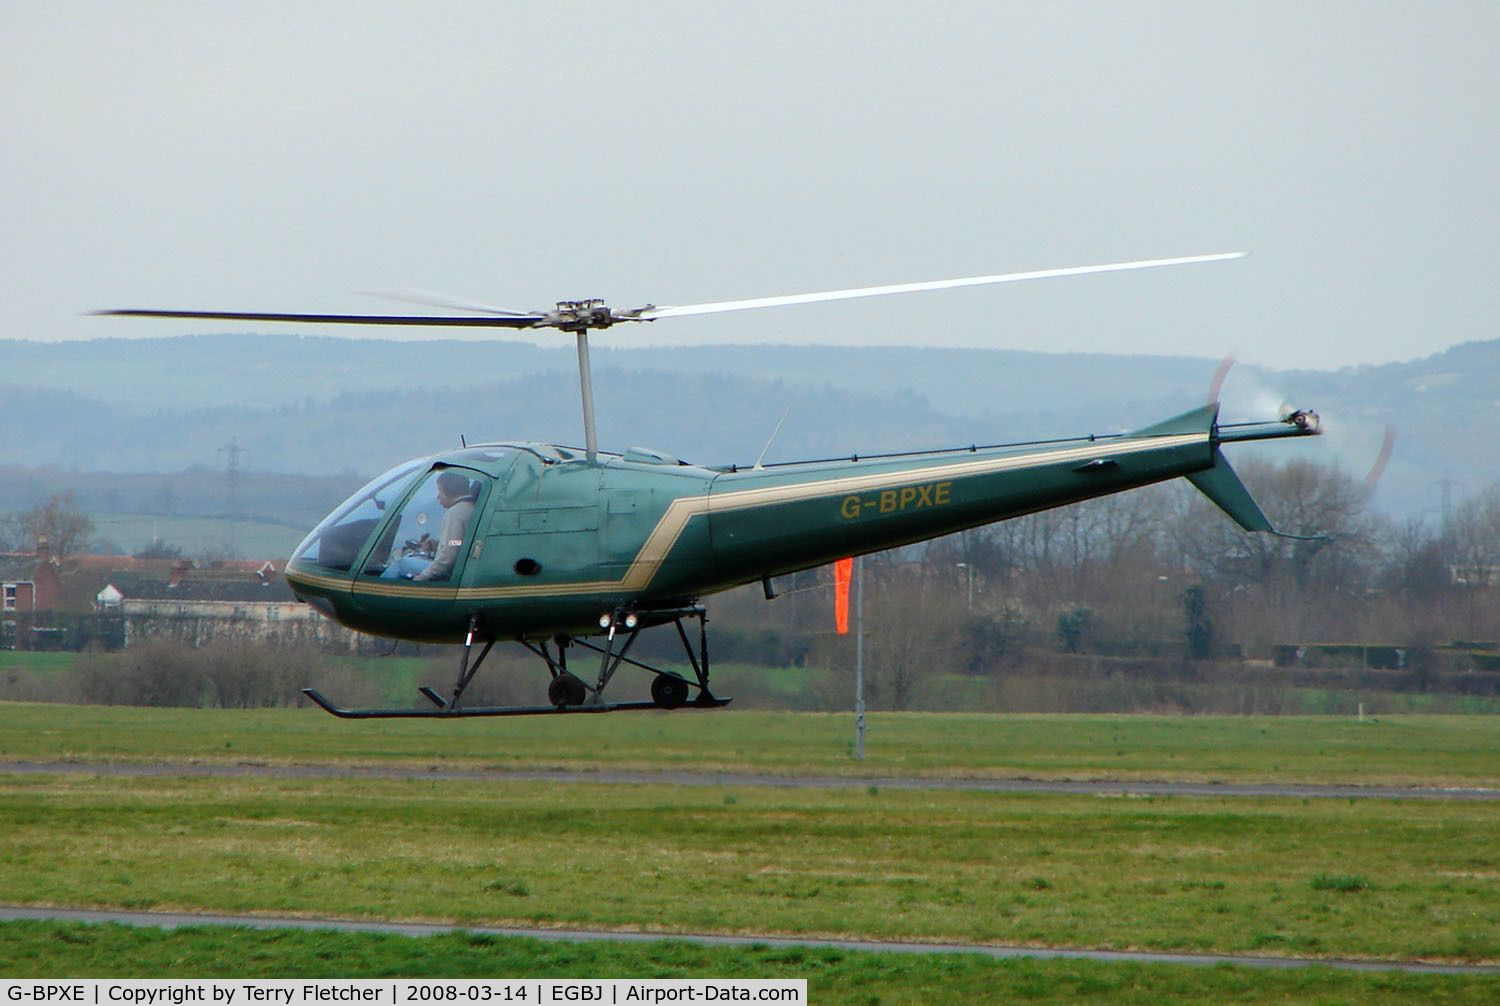 G-BPXE, 1977 Enstrom 280C Shark C/N 1089, A visitor to Gloucestershire Airport on the day of the horse racing Gold Cup  at the nearby Cheltenham Racecourse